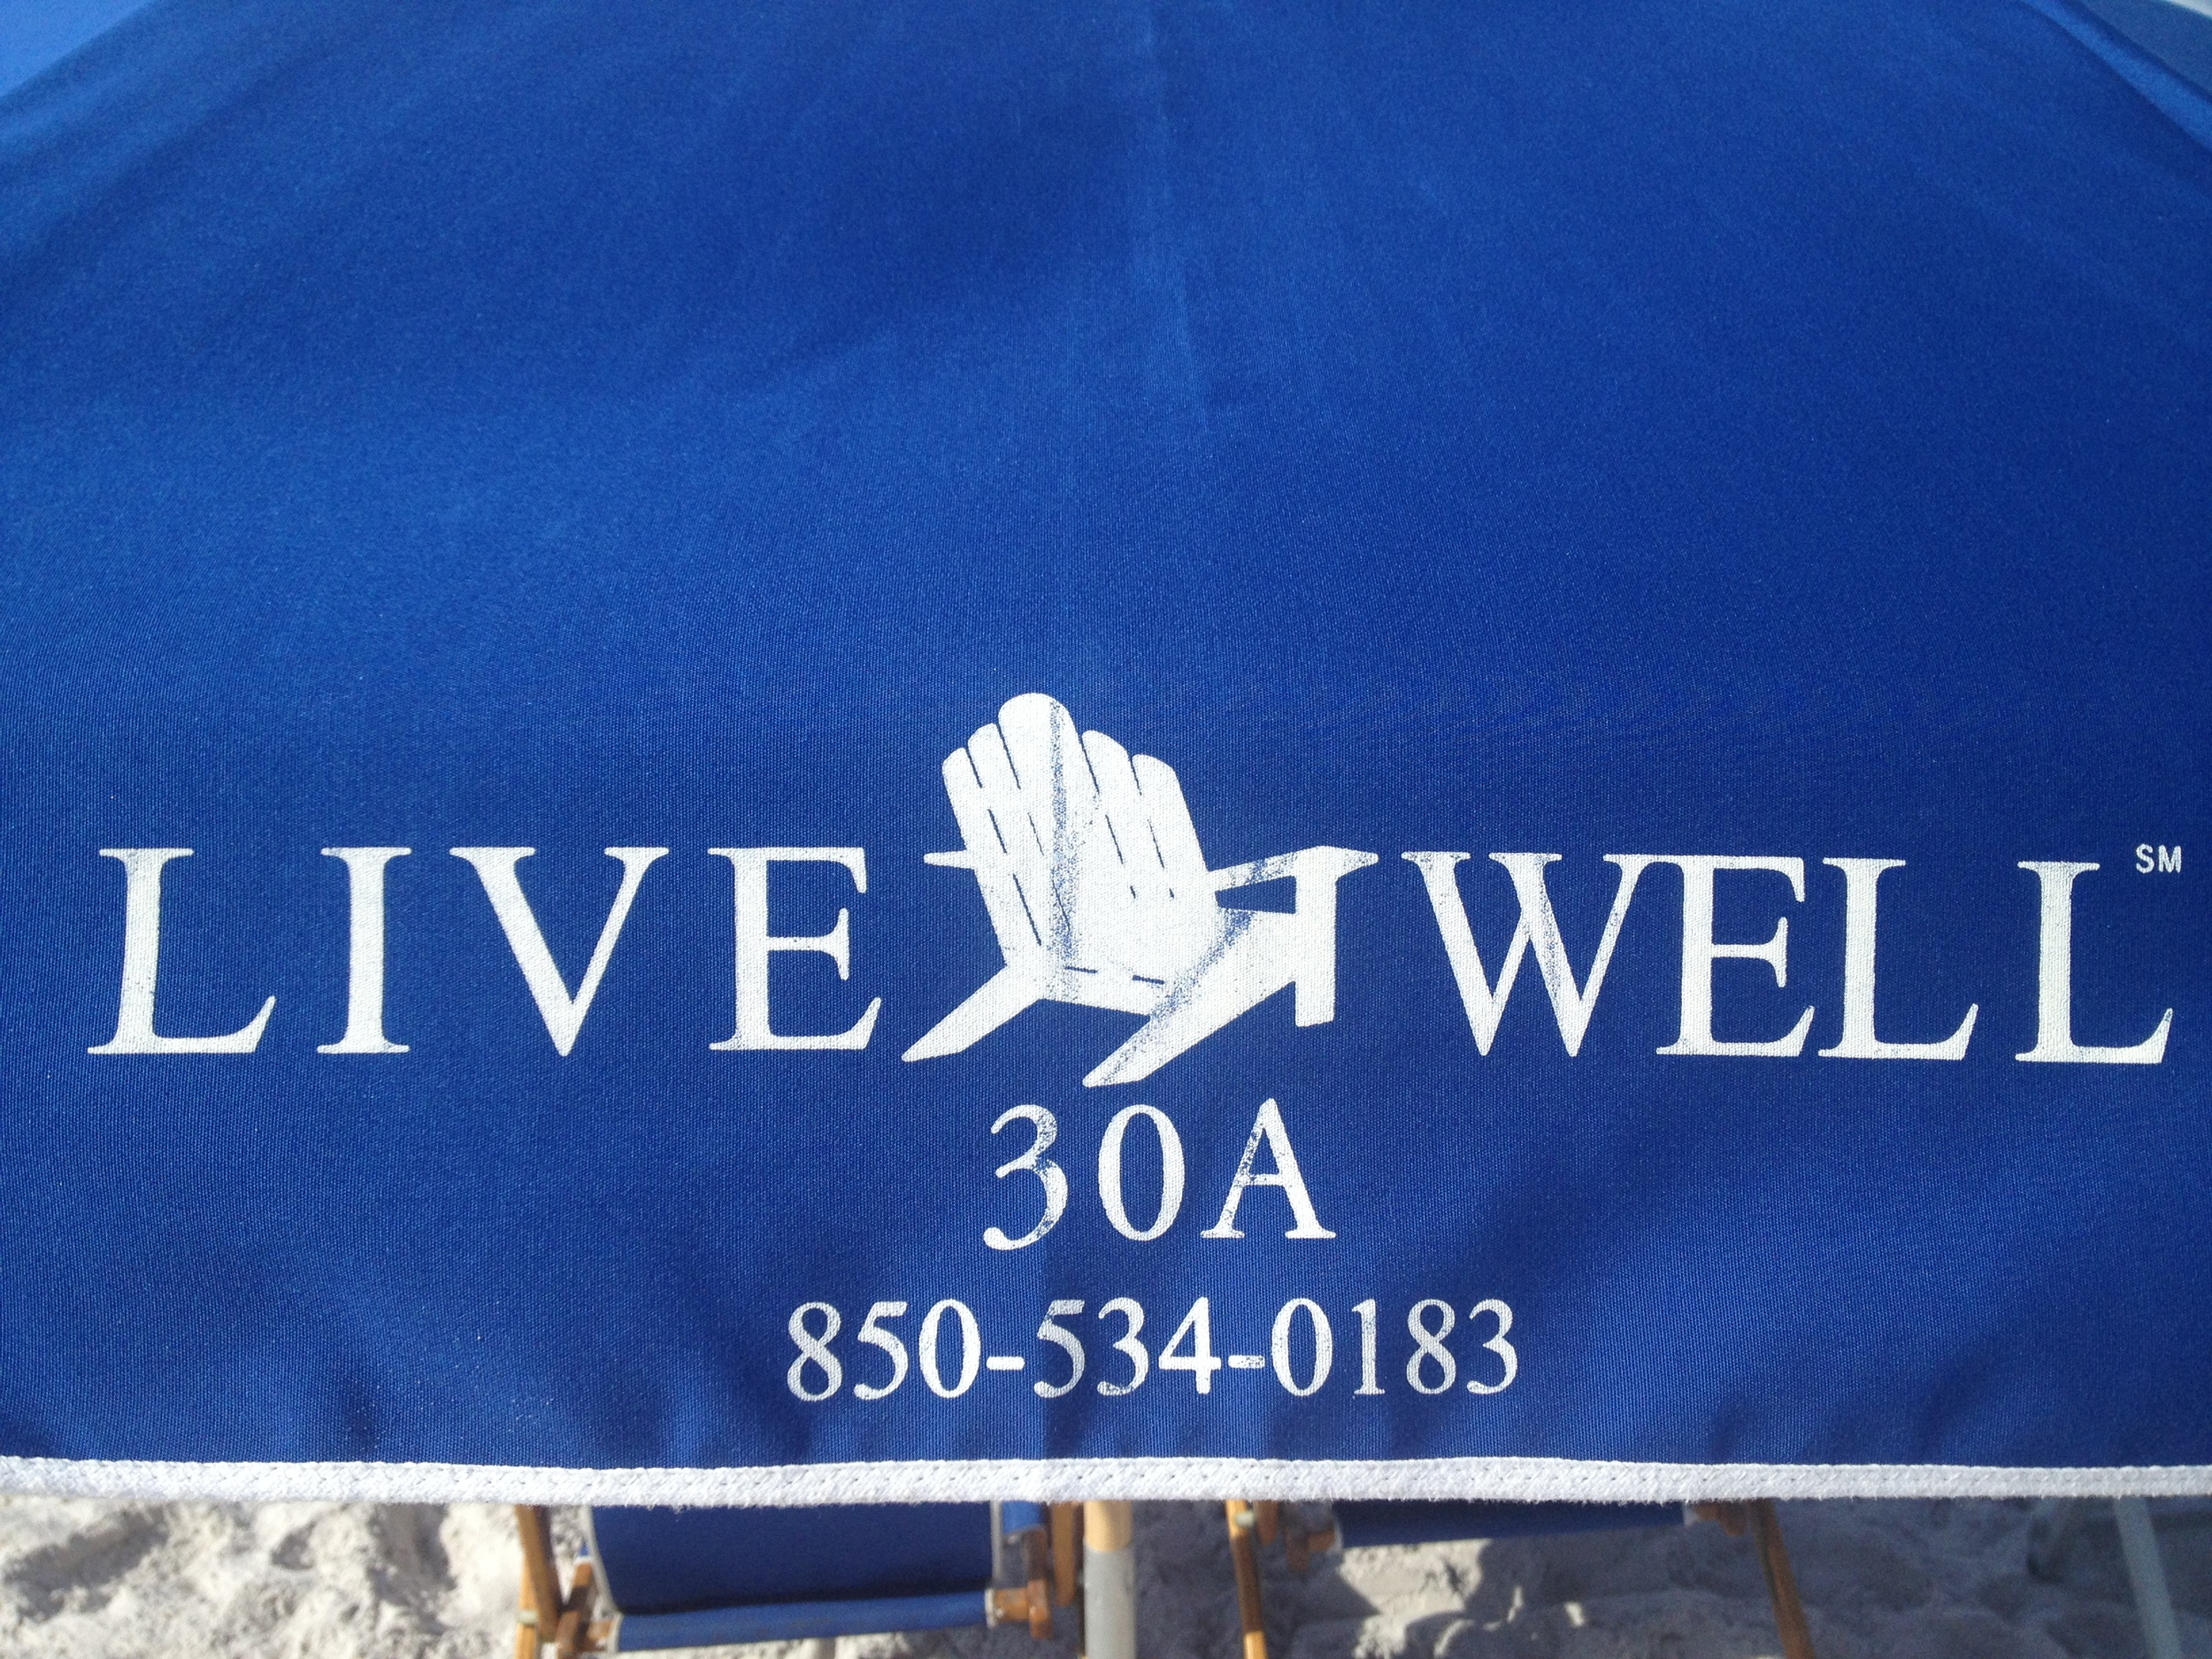 http://www.livewellbikes.com